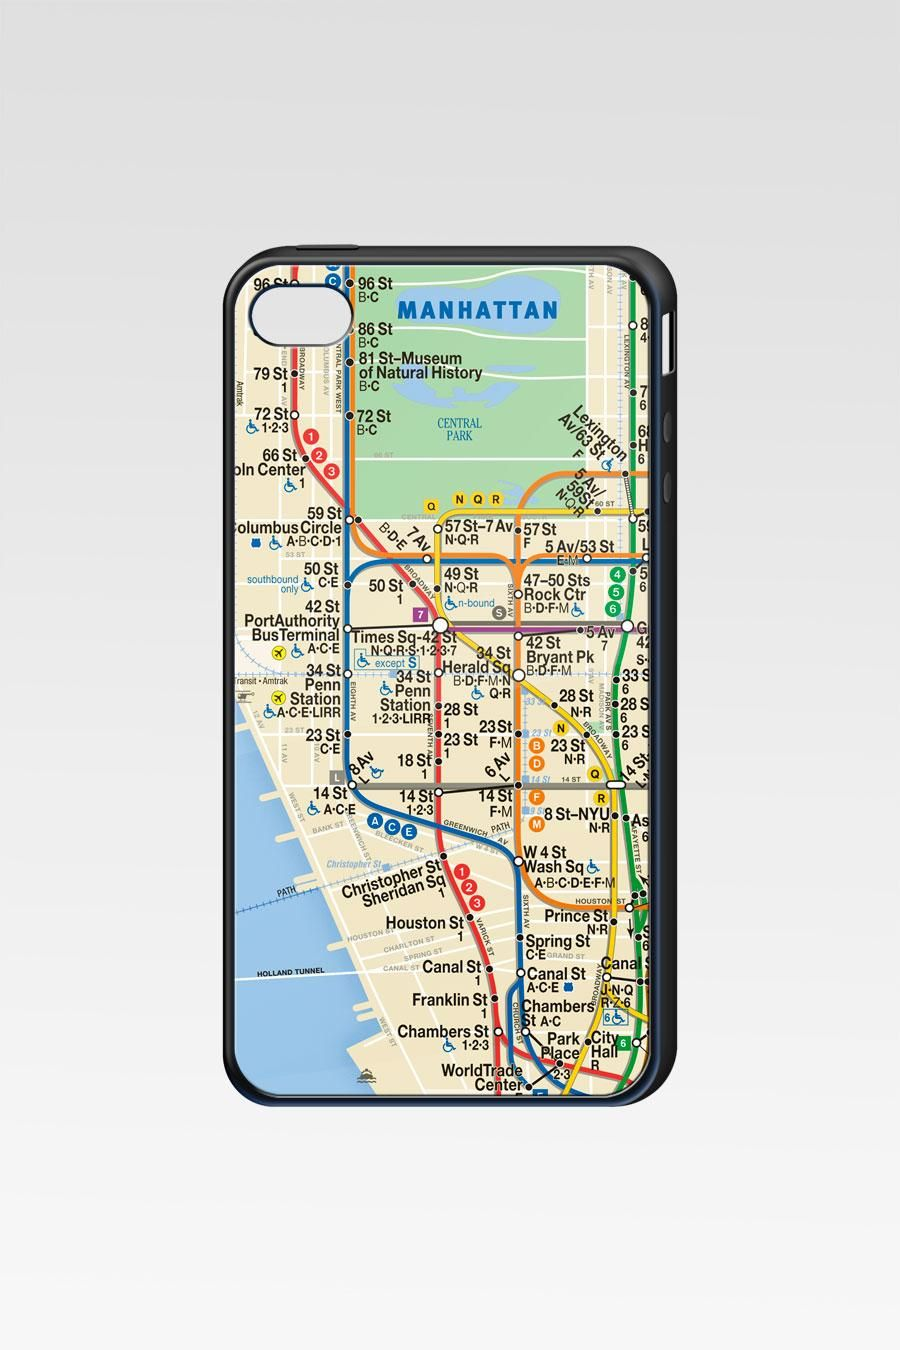 Nyc Subway Map Iphone 5 Case.Manhattan Subway Map Iphone Case Products I Love And Need In My